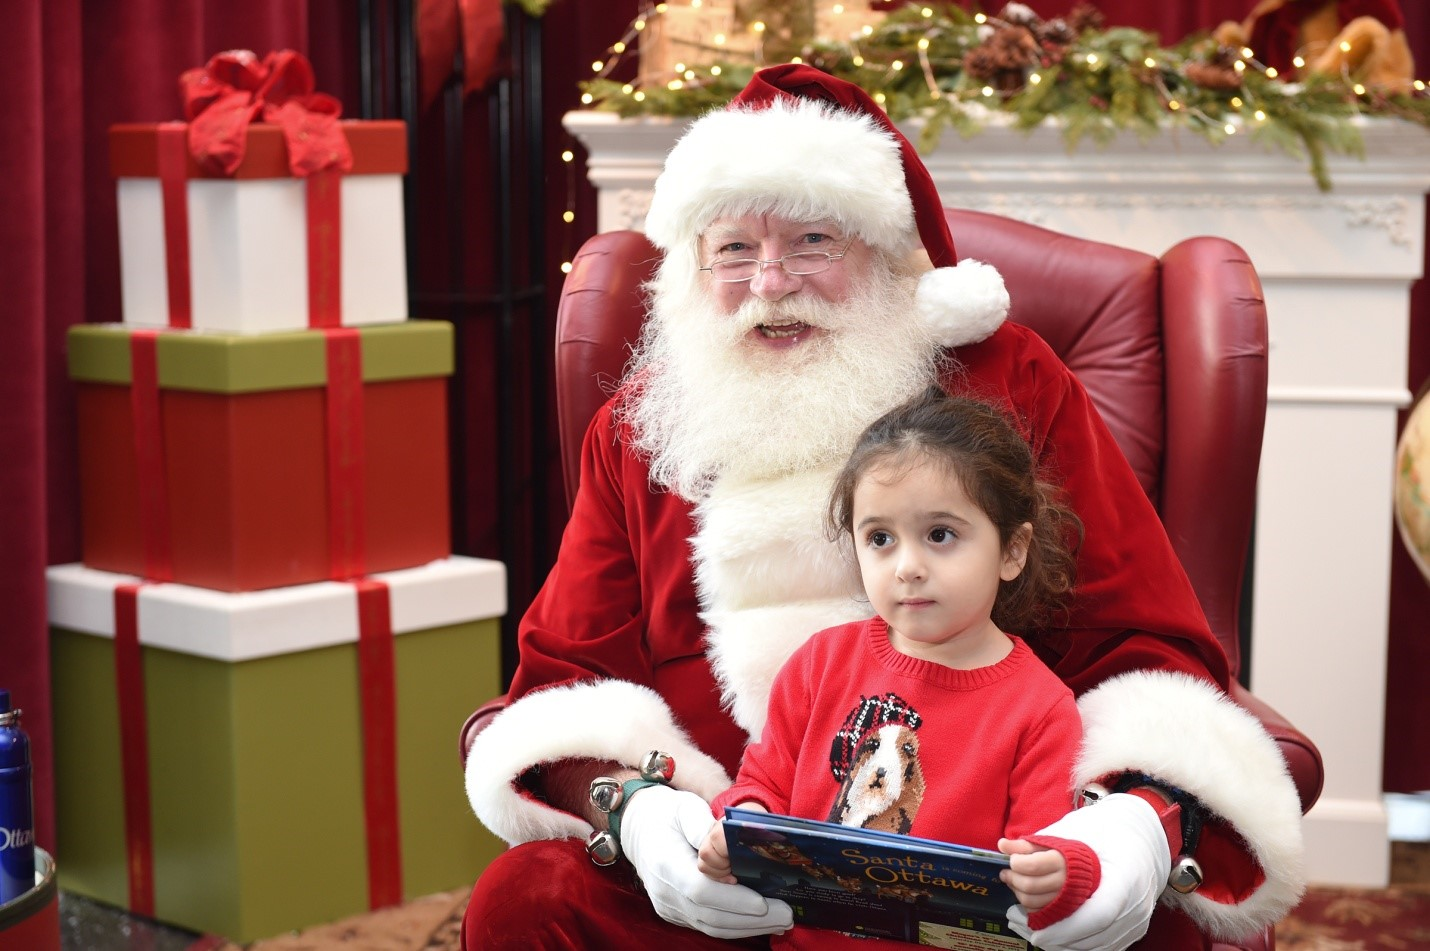 Santa with child sitting on his lap